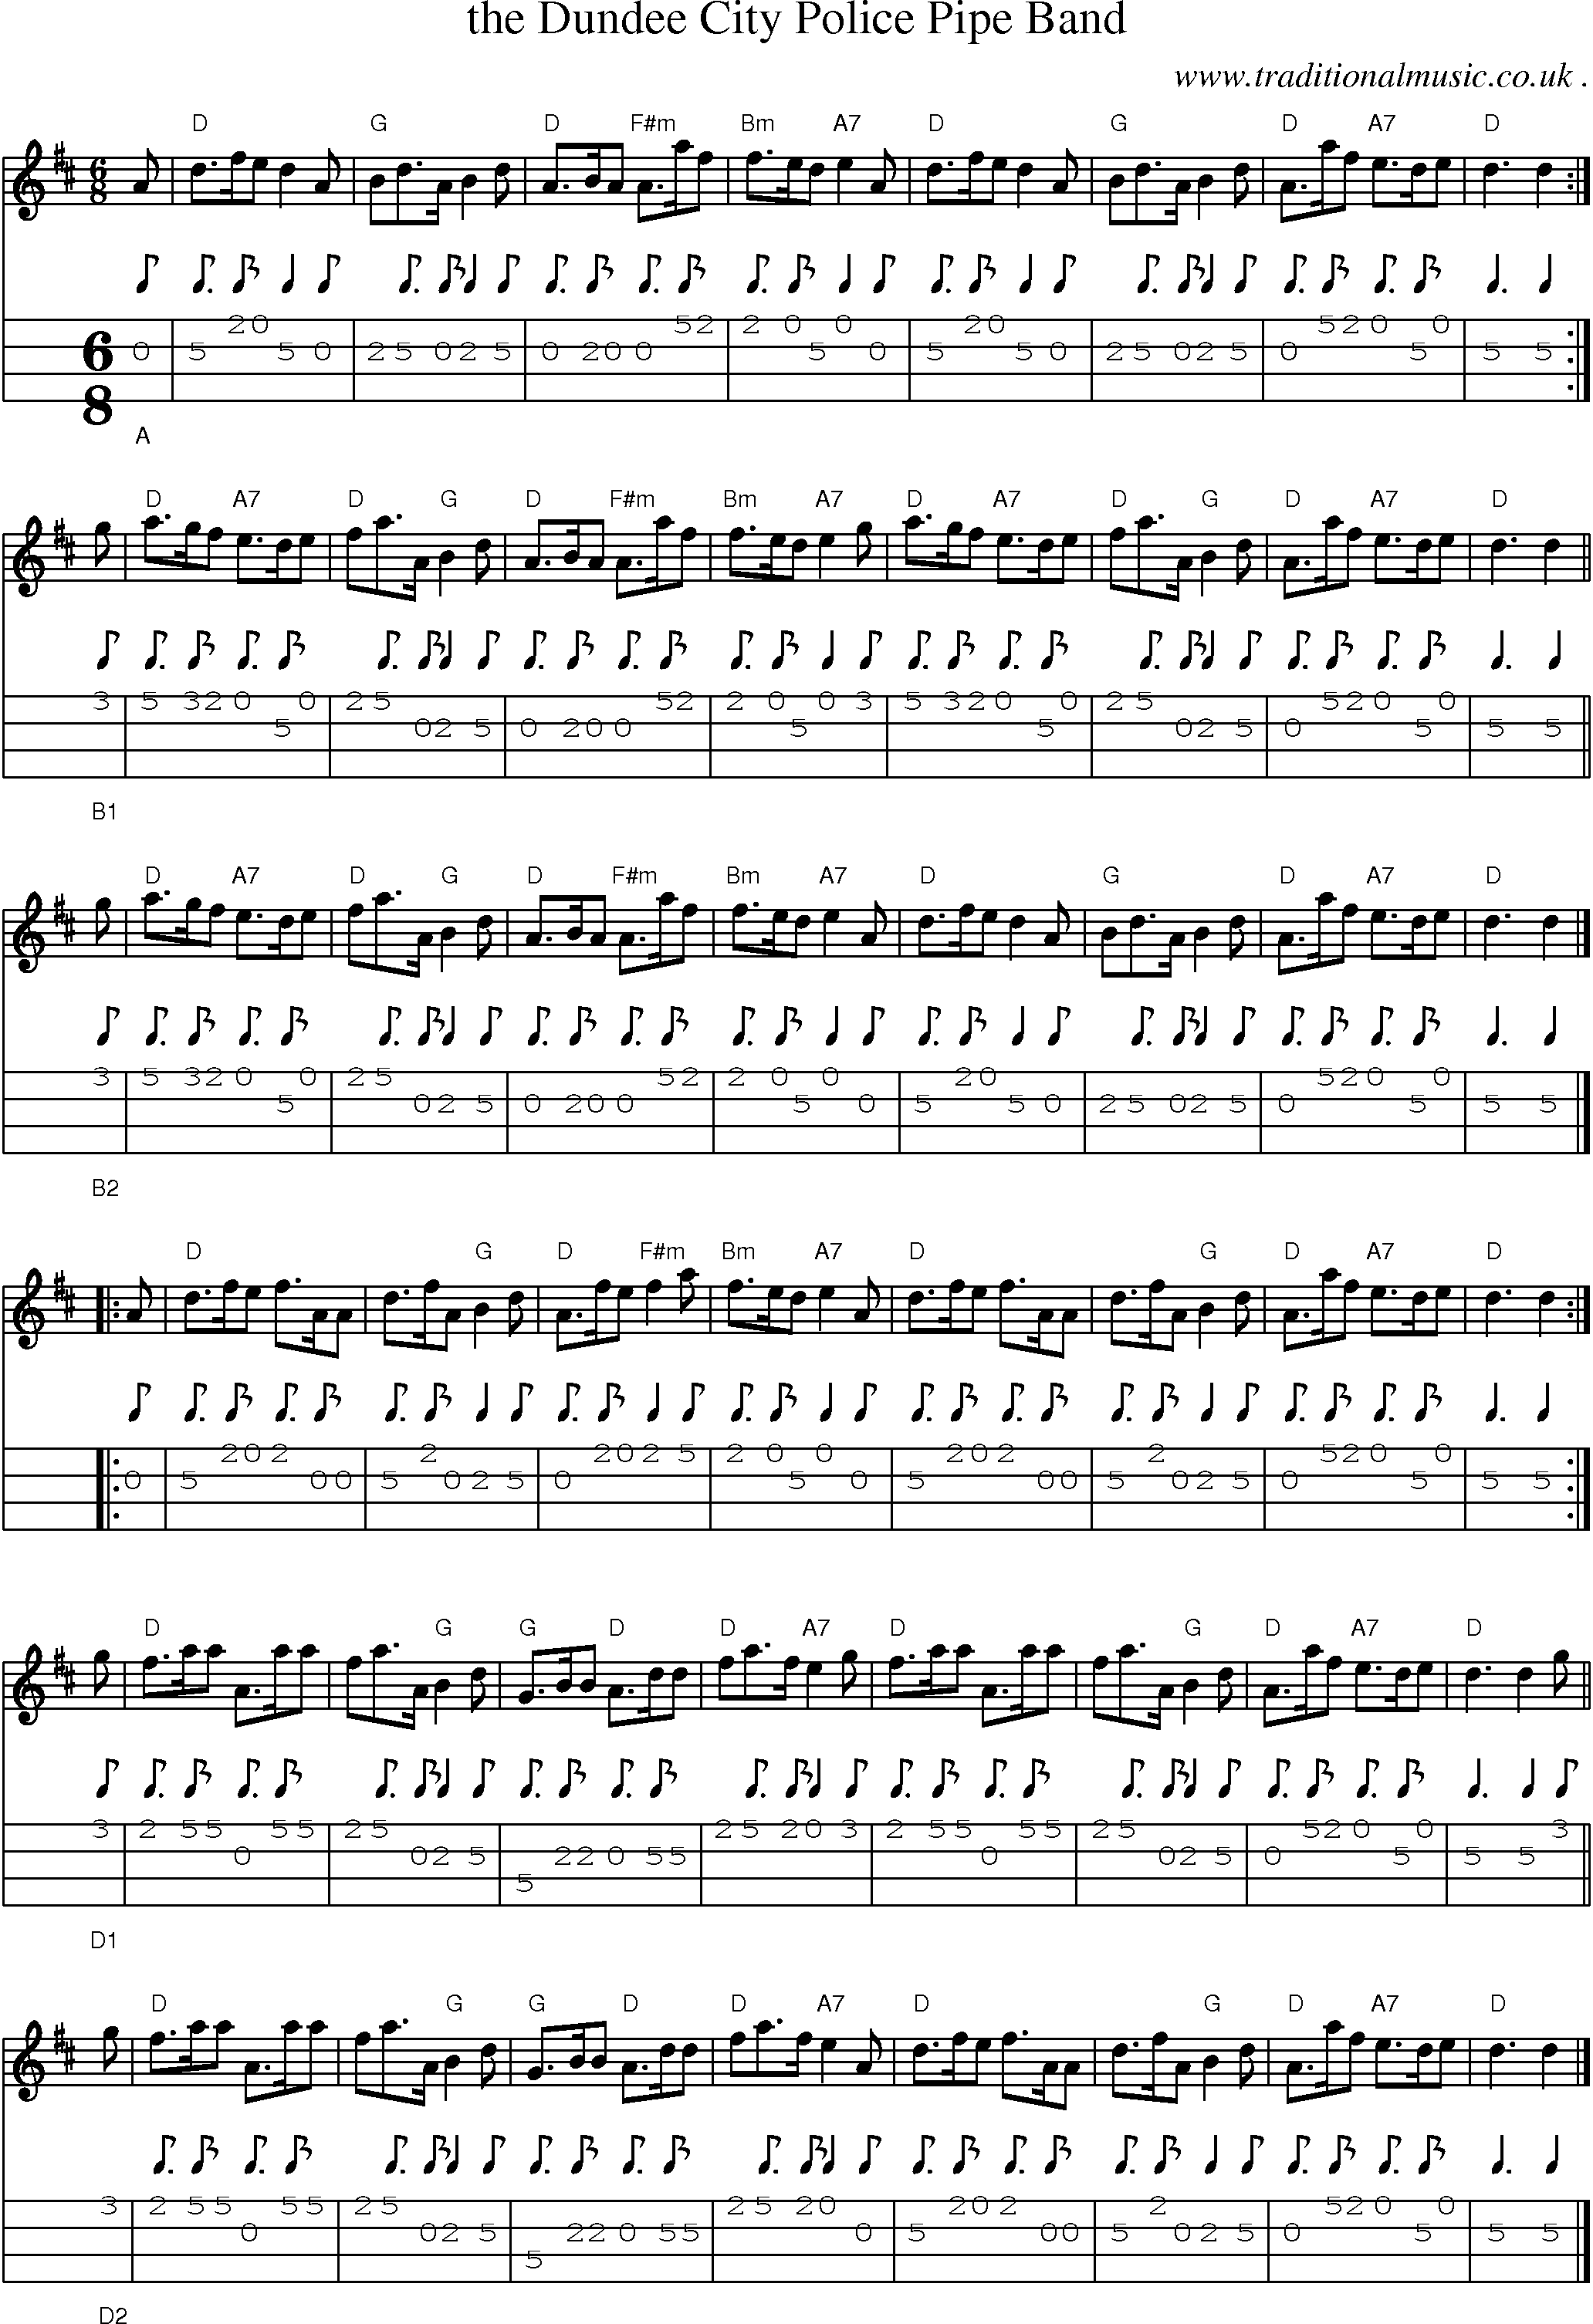 Scottish Tune, Sheetmusic, Midi, Mp3, Mandolin Tab and PDF for: The Dundee City Police Pipe Band